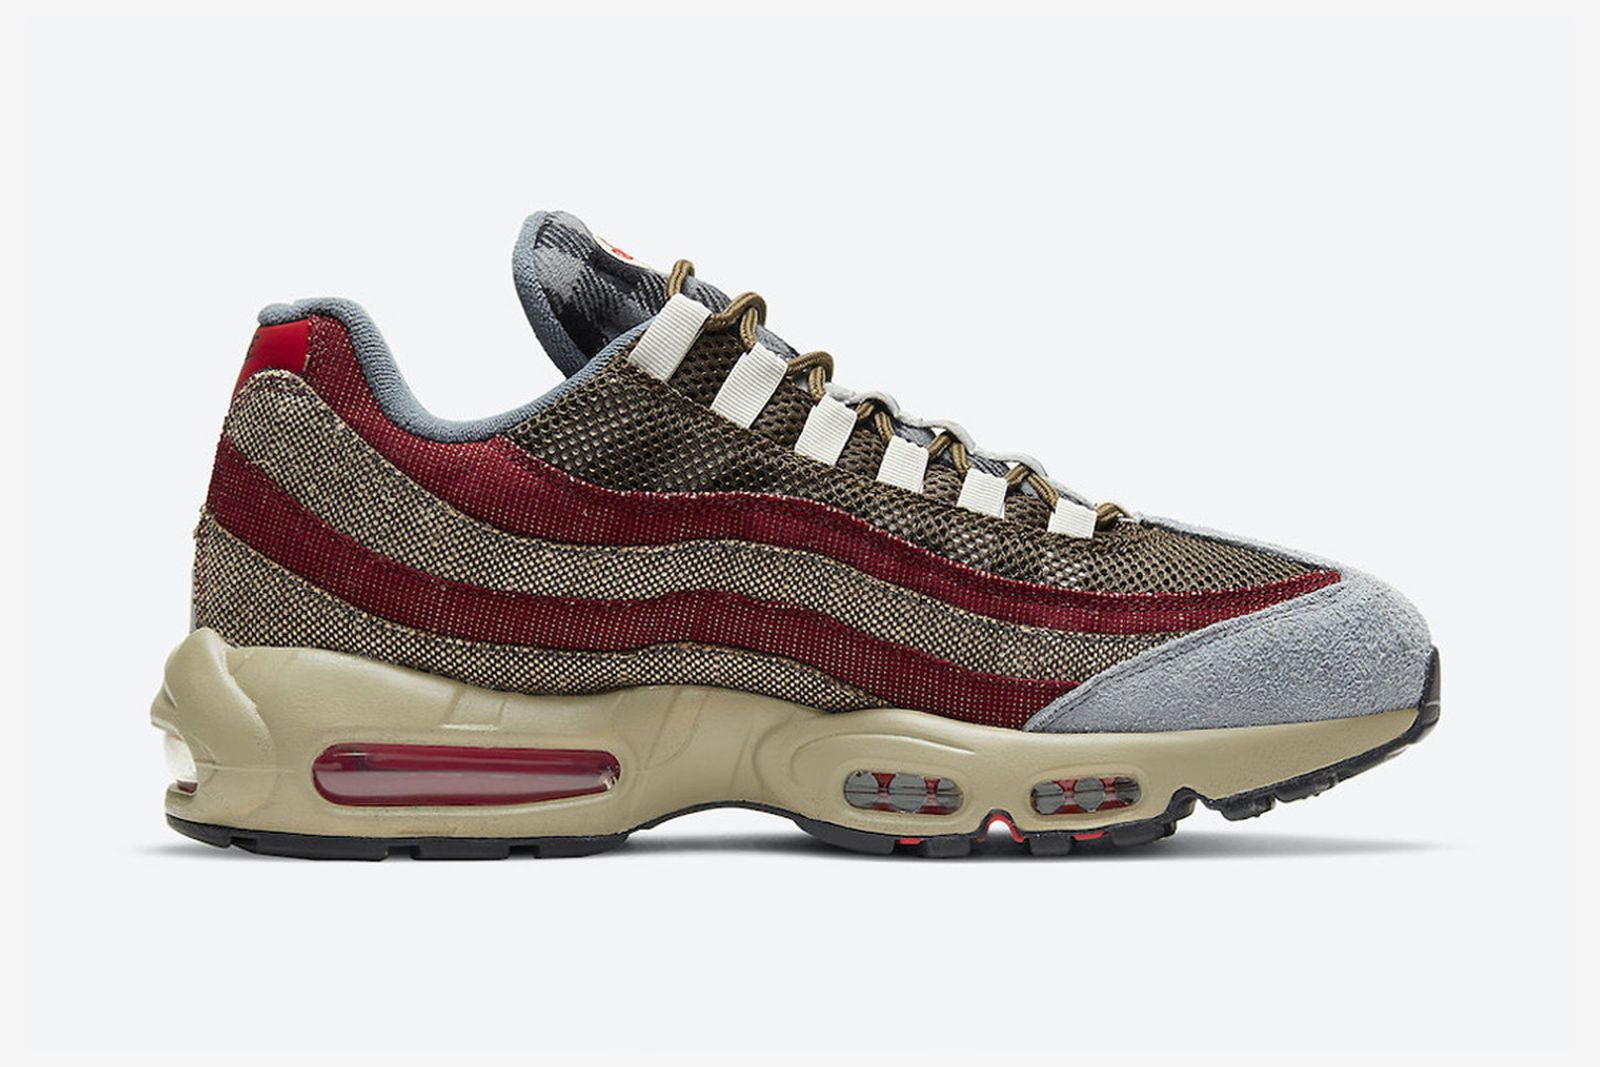 Nike Air Max 95 Freddy Krueger product shots